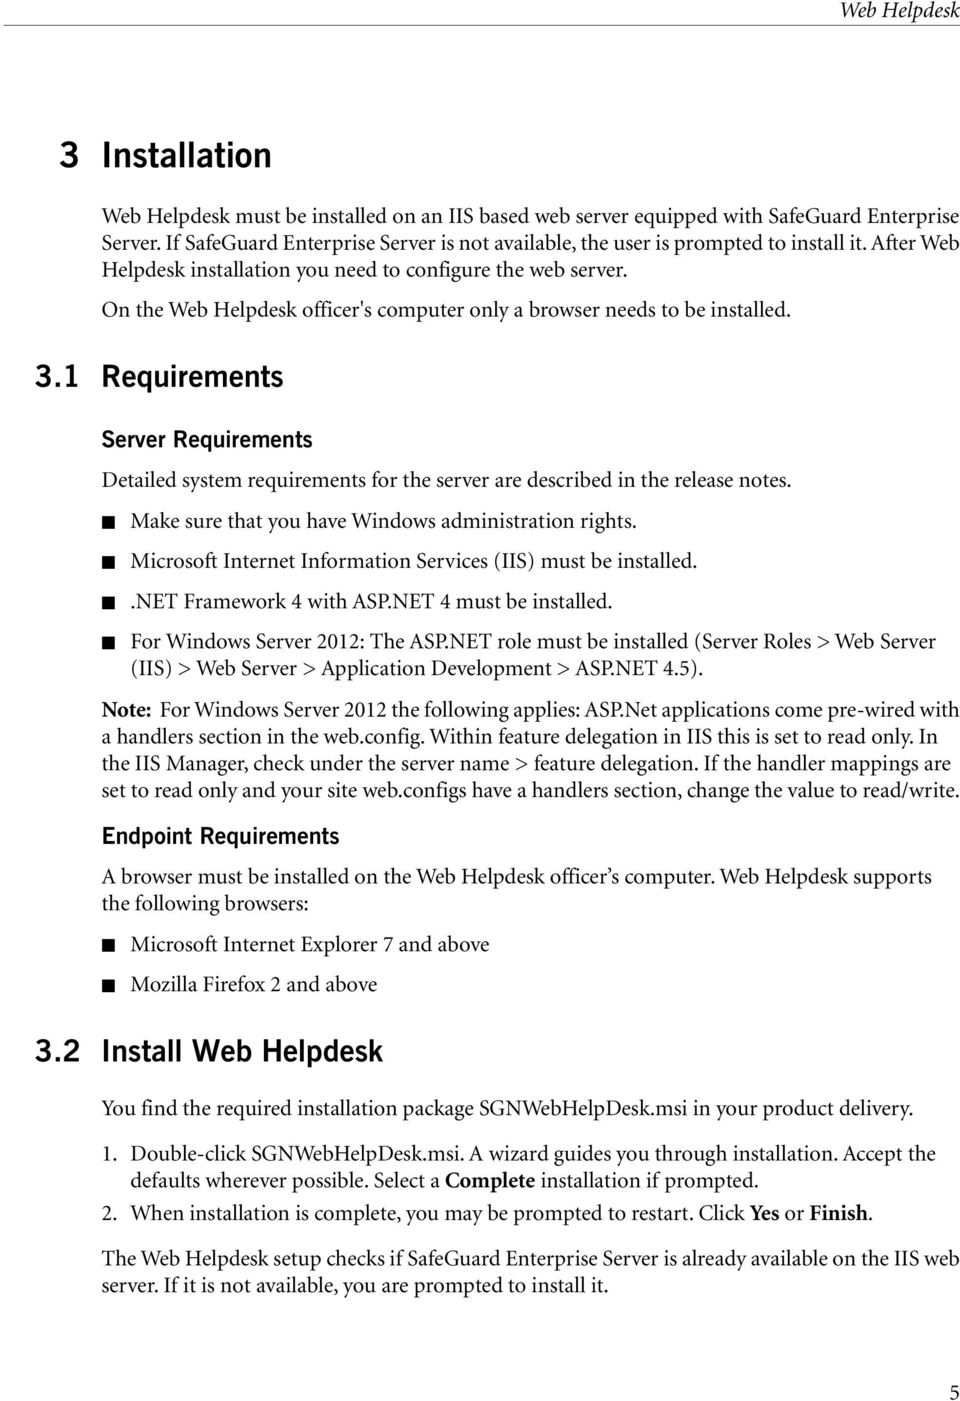 On the Web Helpdesk officer's computer only a browser needs to be installed. 3.1 Requirements Server Requirements Detailed system requirements for the server are described in the release notes.